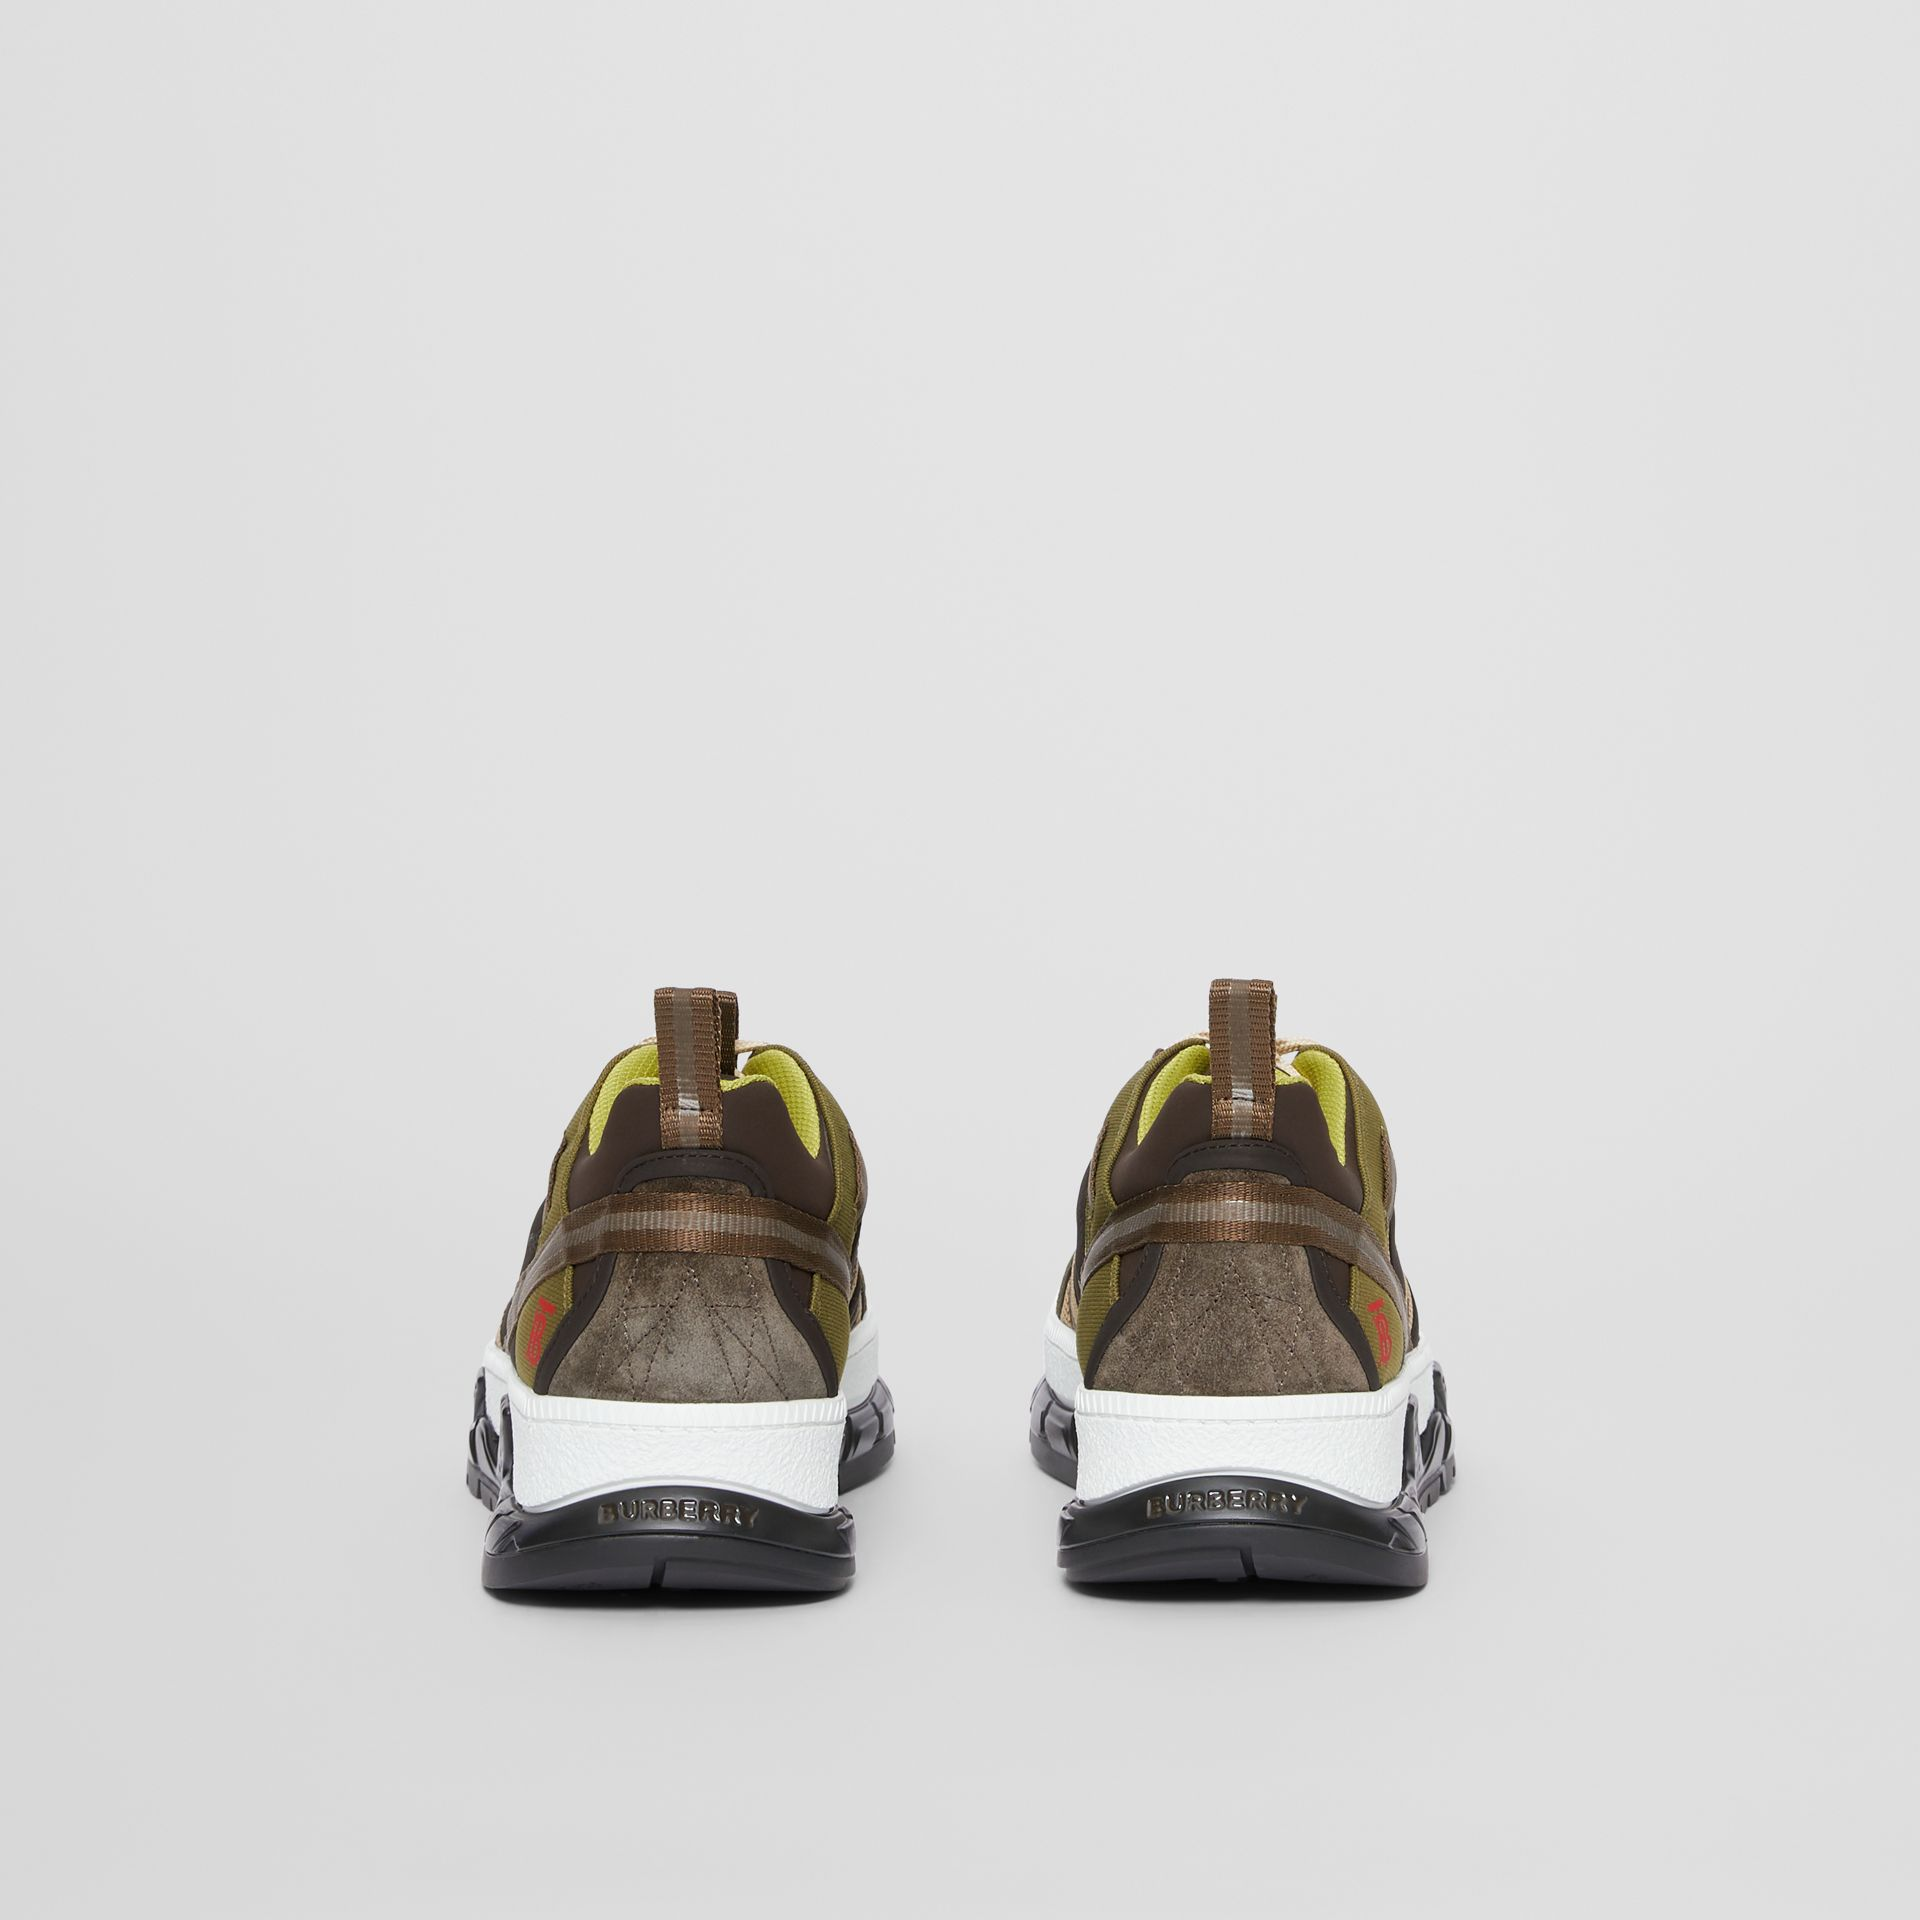 Mesh and Suede Union Sneakers in Khaki / Brown - Men | Burberry Hong Kong S.A.R - gallery image 3